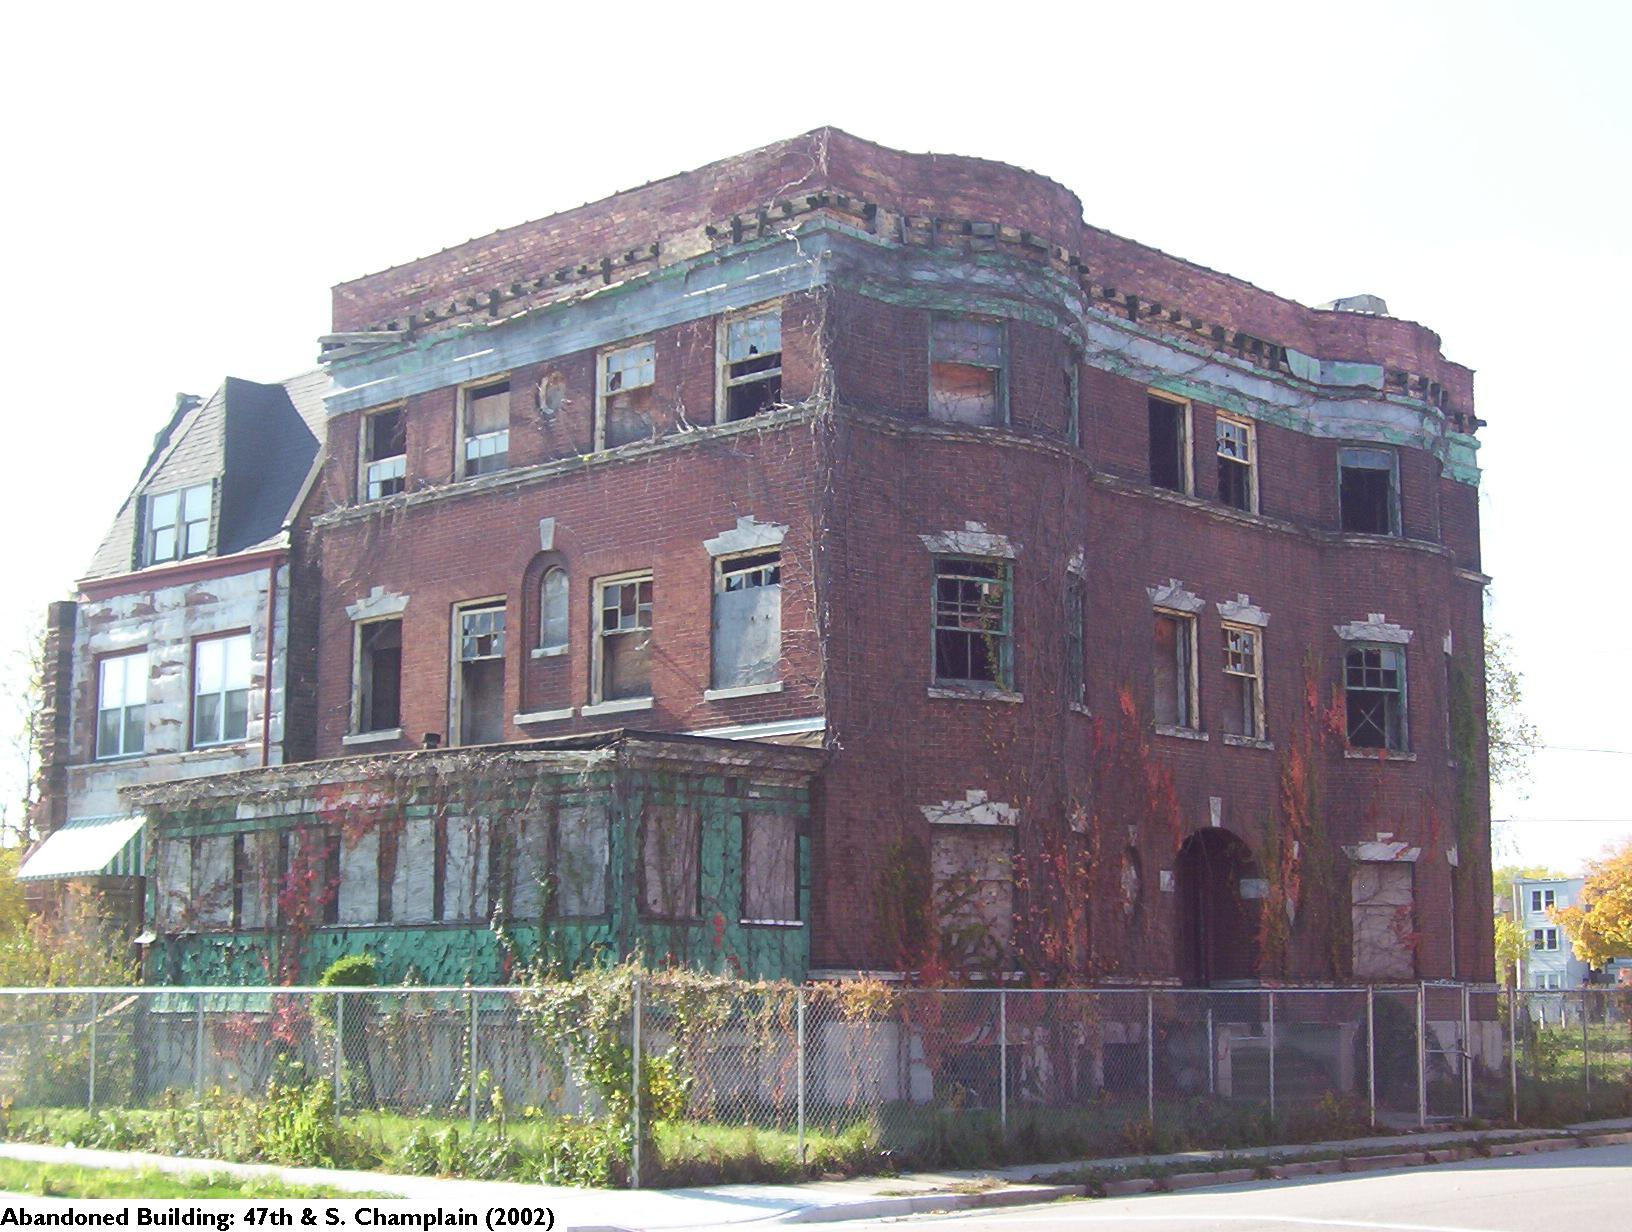 acondor.depaul.edu__blackmet_DensityMaps_photos_Blighted_SGB_20Abandoned.JPG